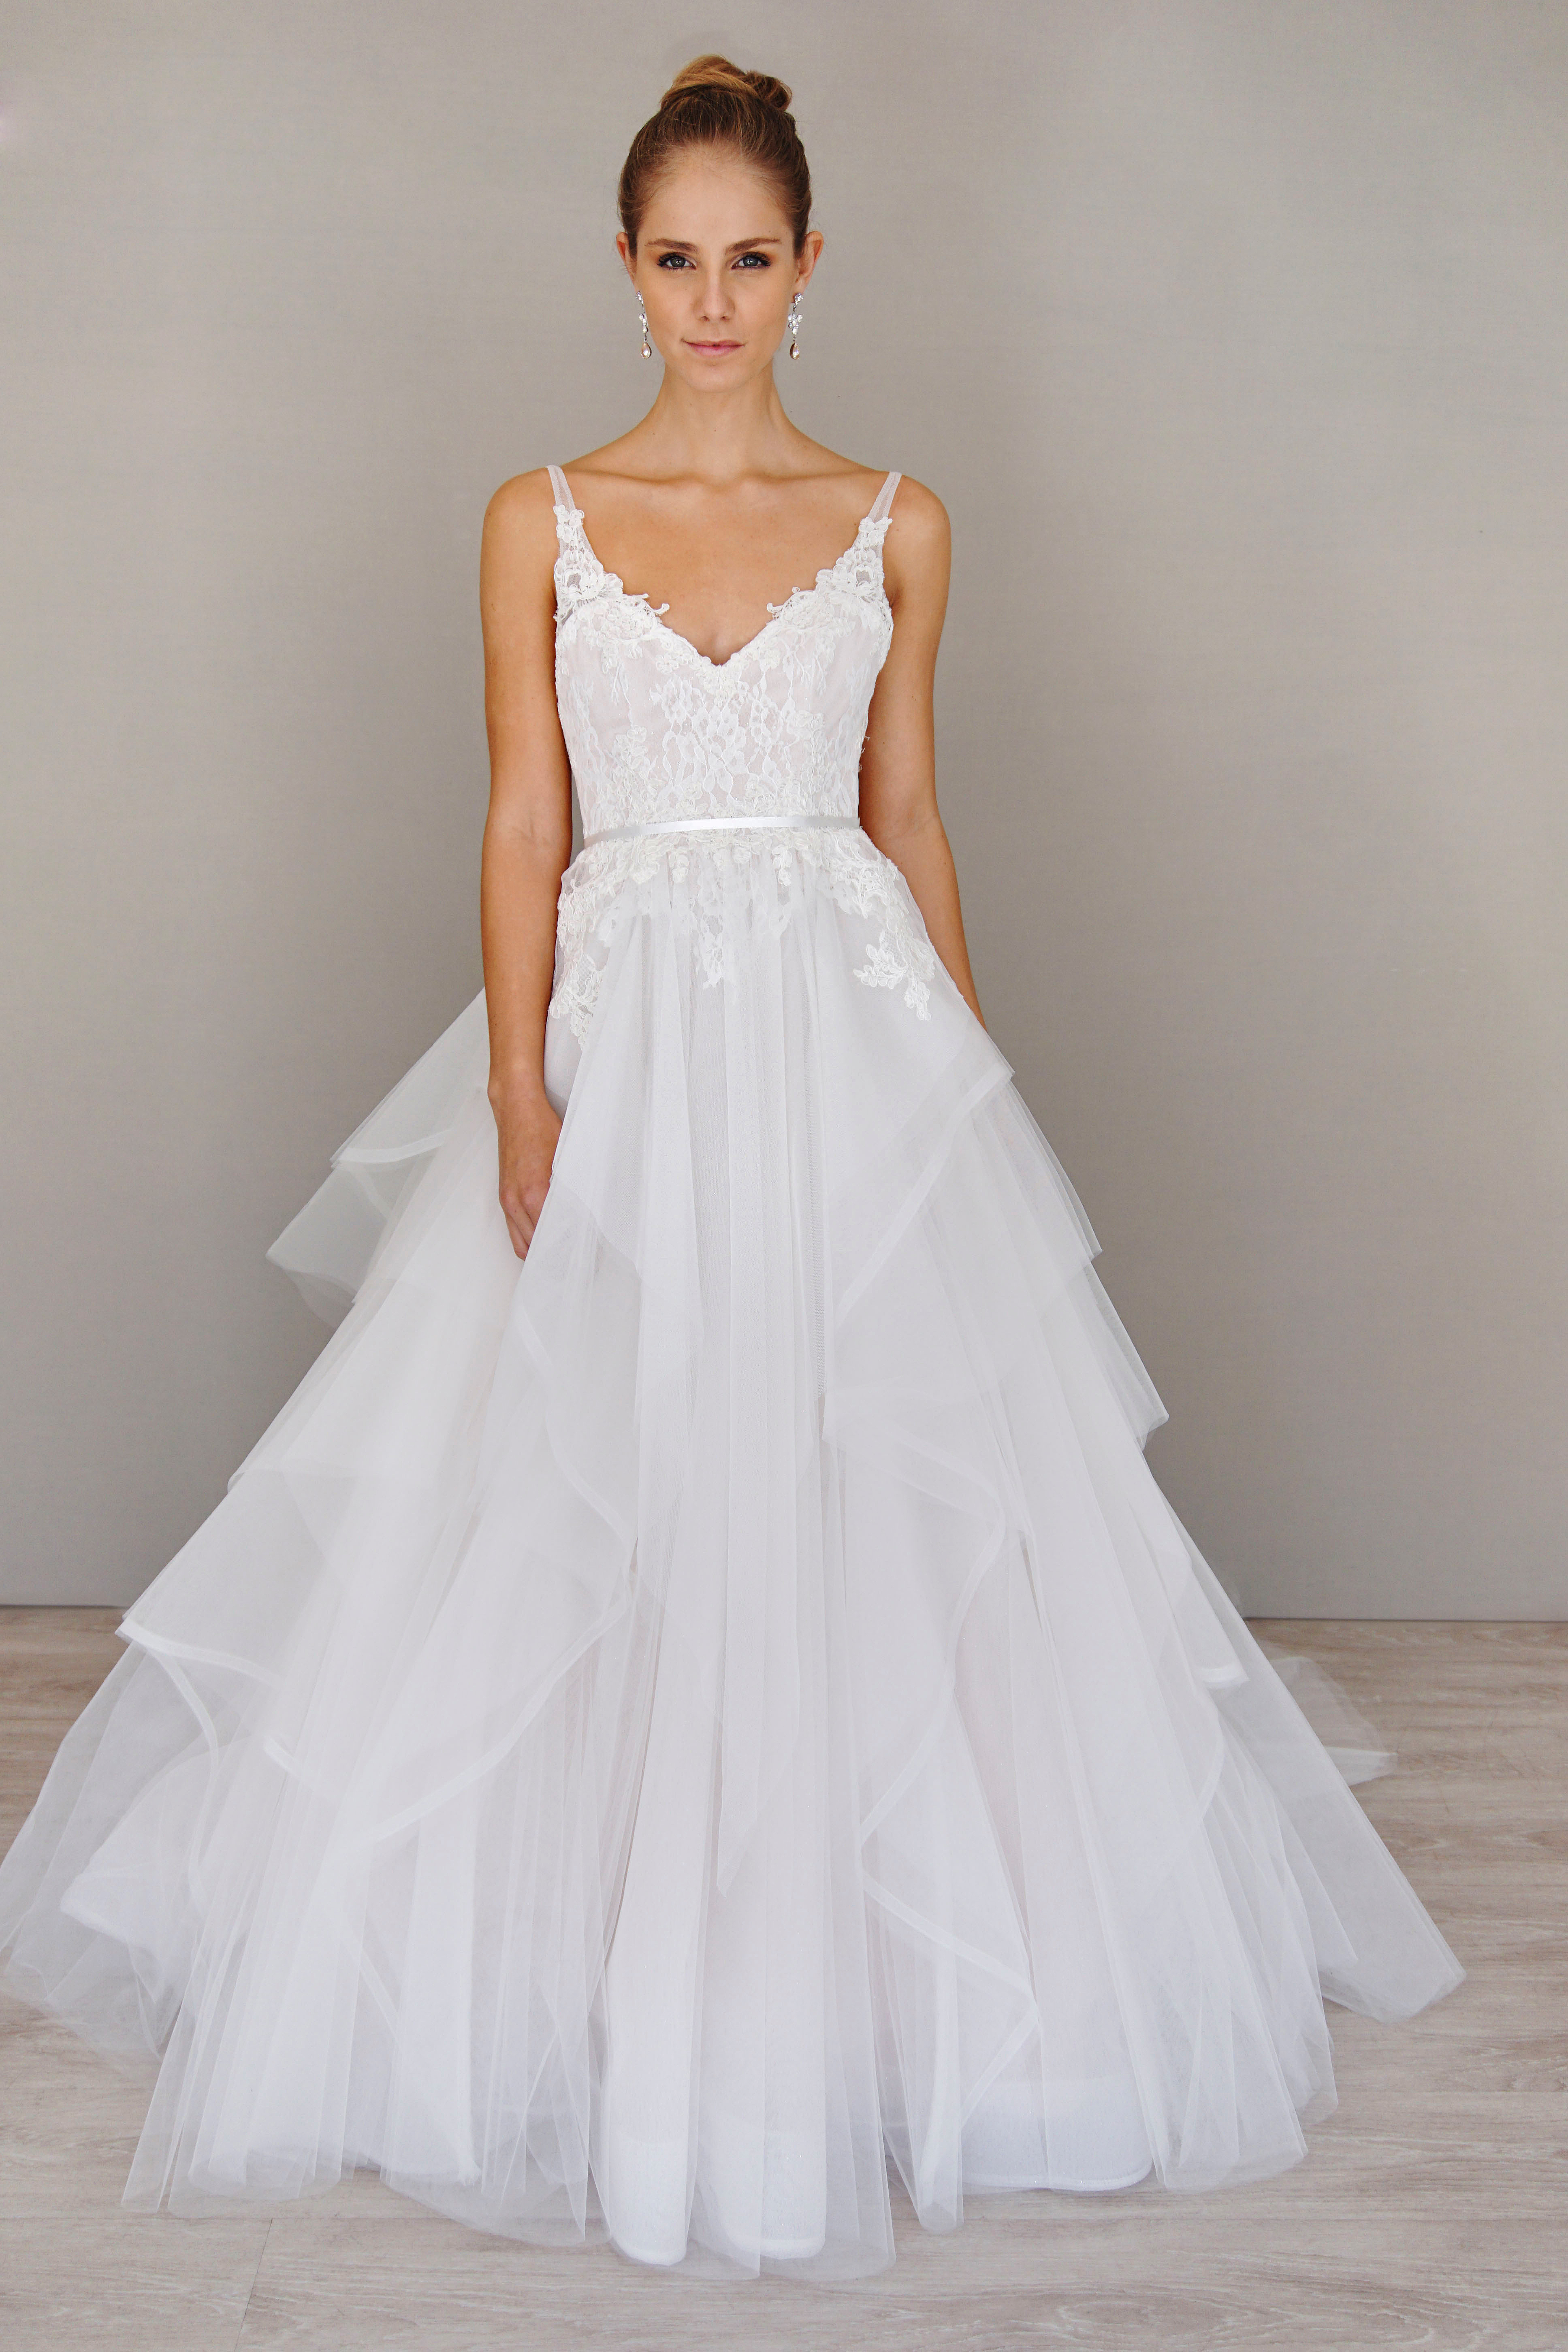 alvina valenta wedding dresses prices designer wedding dress rental Alvina Valenta Wedding Dresses Prices 20